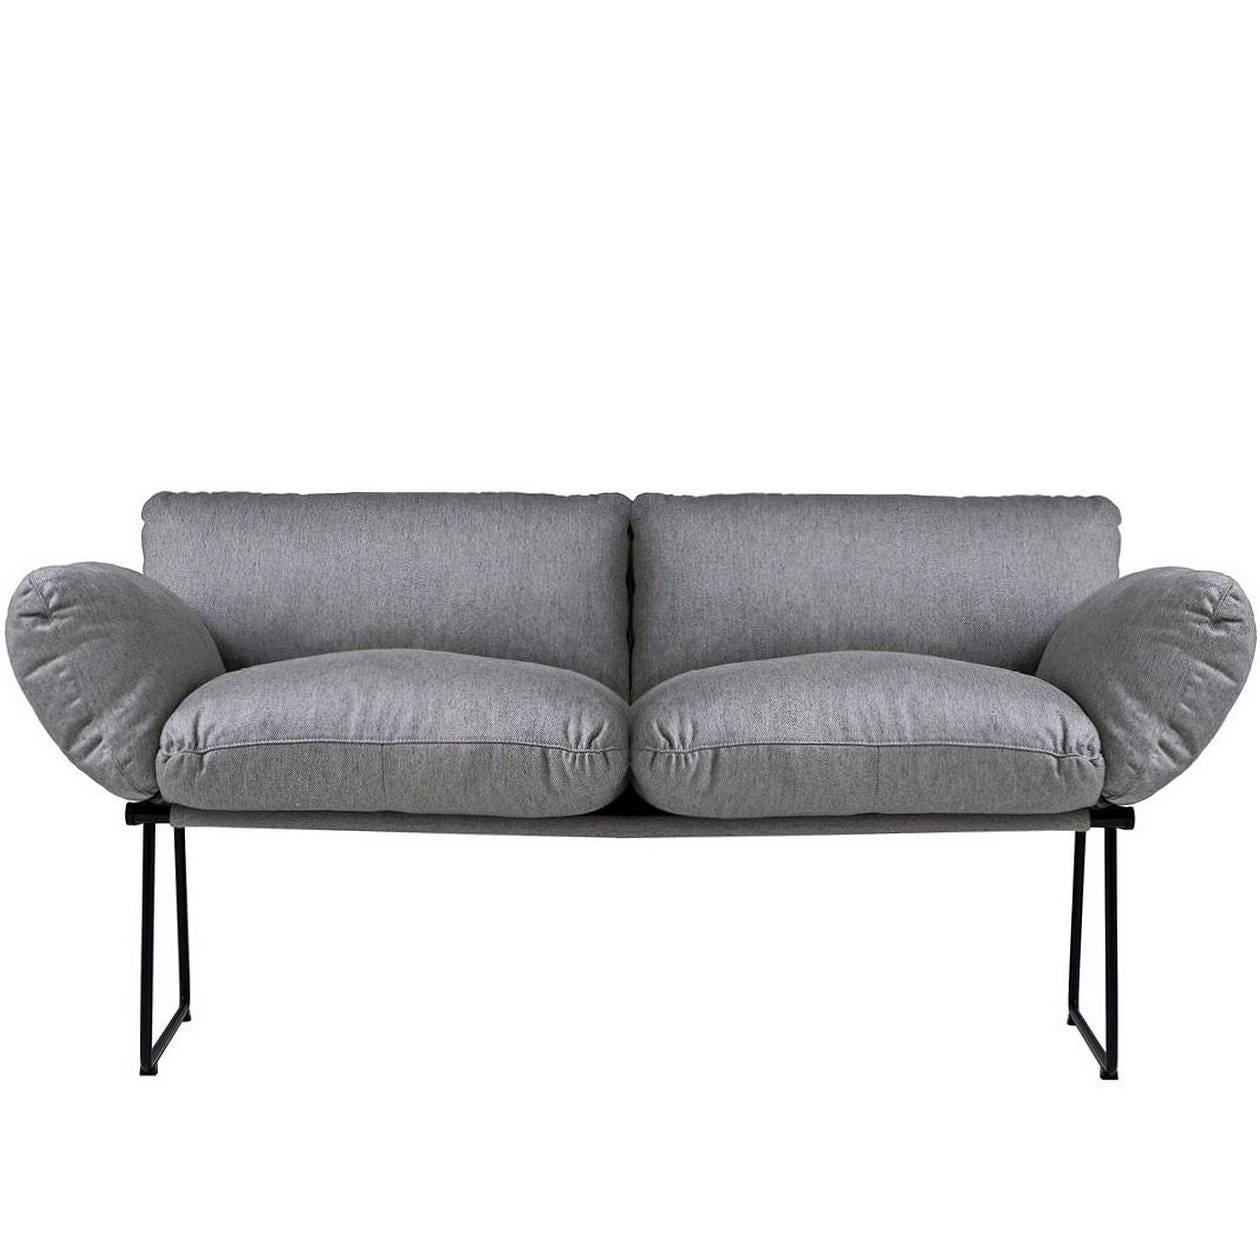 """""""Elisa"""" Indoor Two-Seat Sofa Designed by Enzo Mari for Driade"""